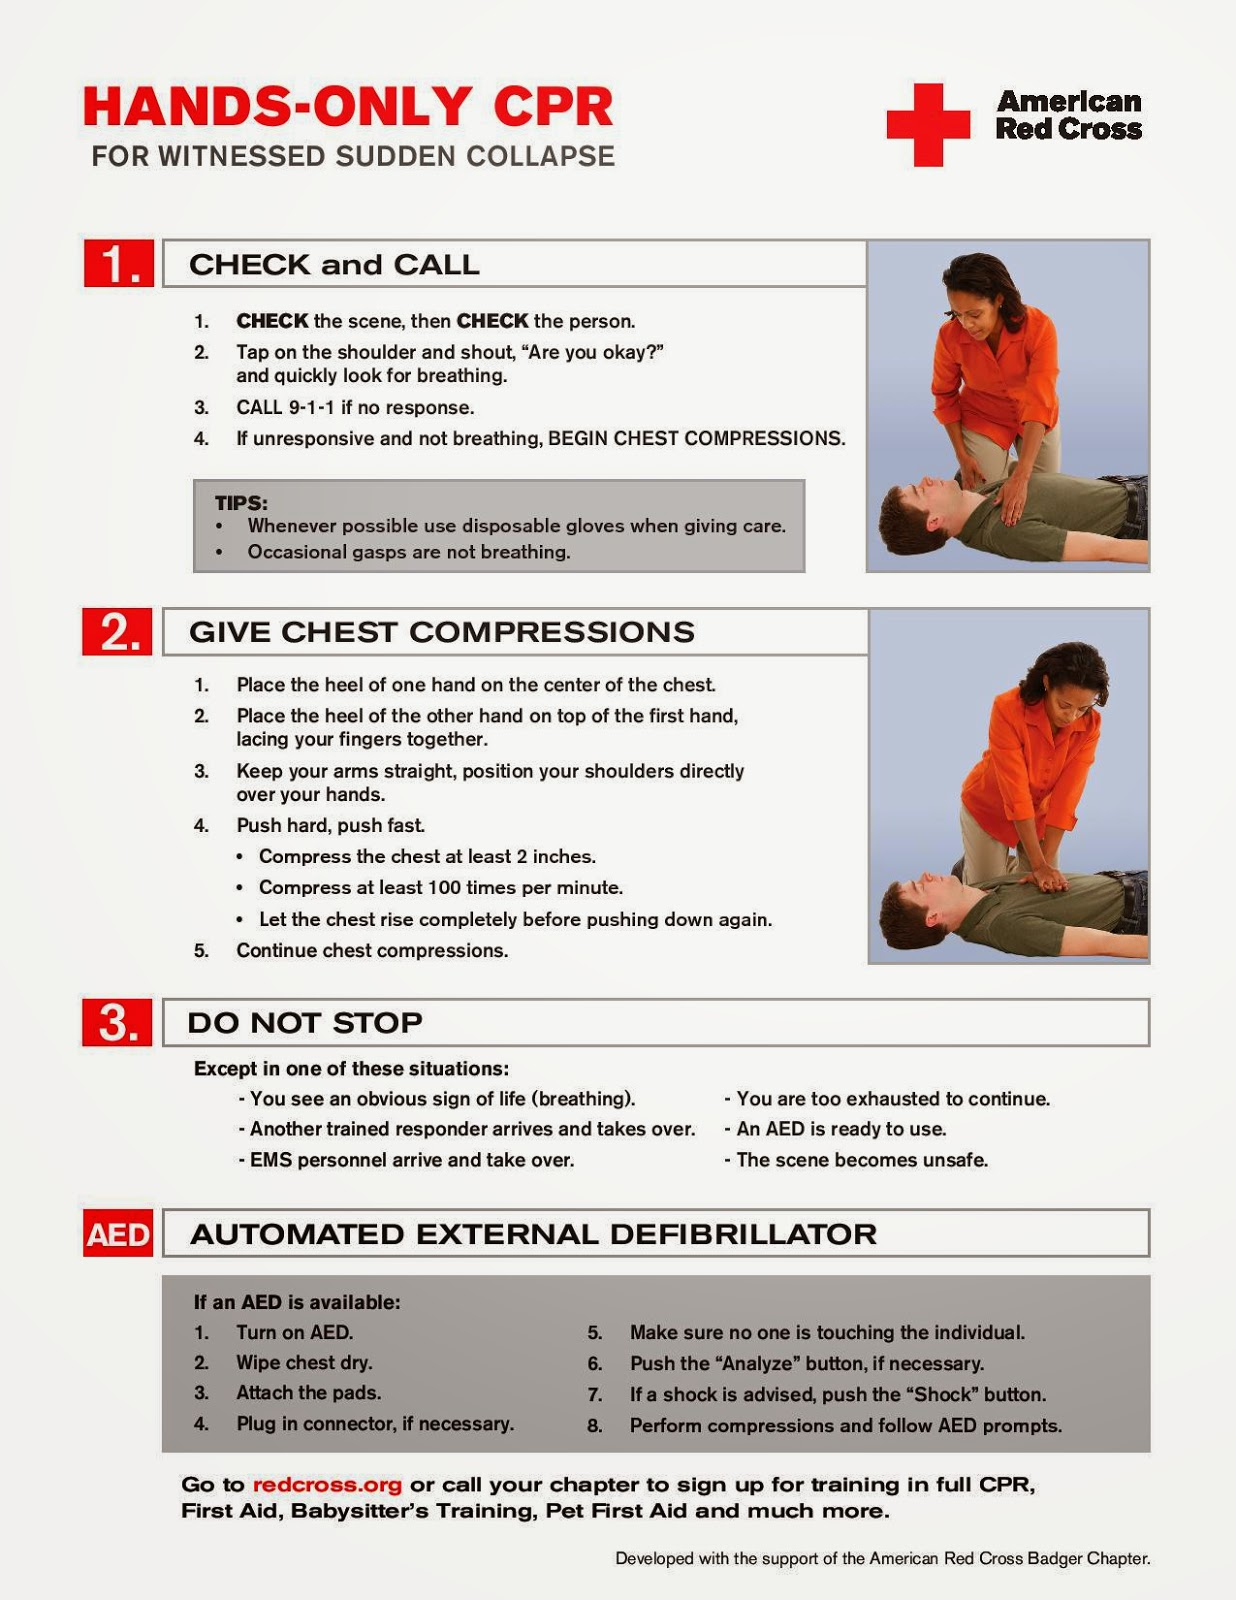 American Red Cross Hands-Only CPR